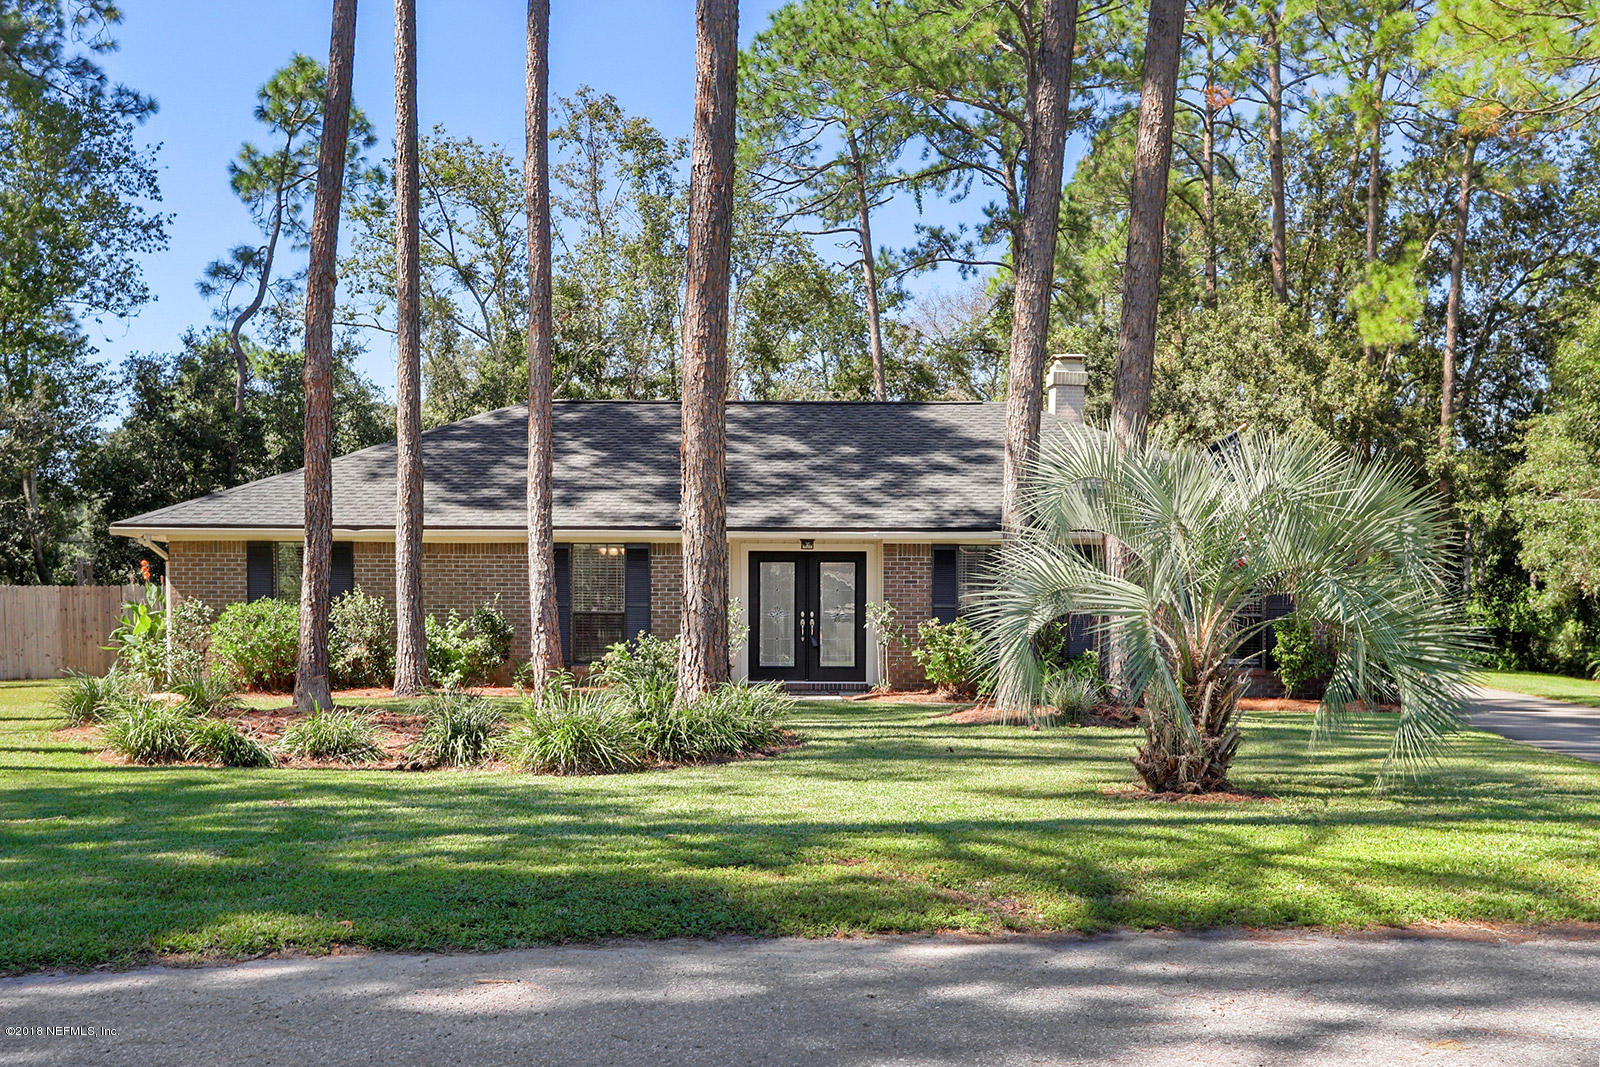 670 FRUIT COVE FOREST, ST JOHNS, FLORIDA 32259, 3 Bedrooms Bedrooms, ,2 BathroomsBathrooms,Residential - single family,For sale,FRUIT COVE FOREST,961646